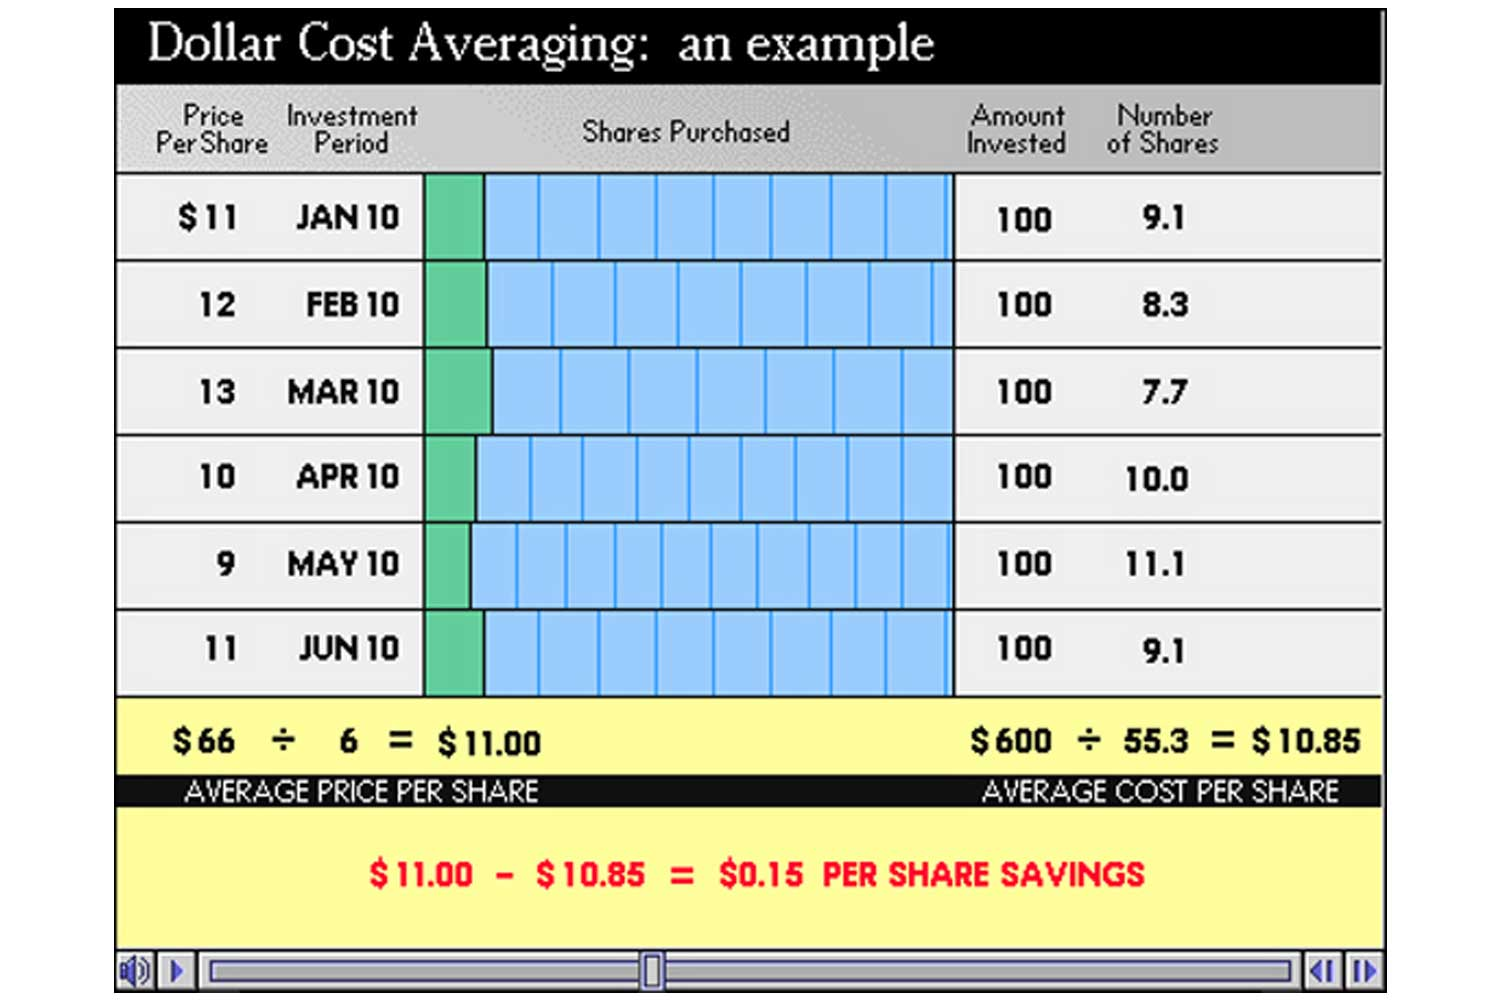 Dollar cost averaging is a strategy to facilitate consistent investment and manage the fluctuating cost of shares over time. This visualization shows how the process works, and the savings that can be achieved.